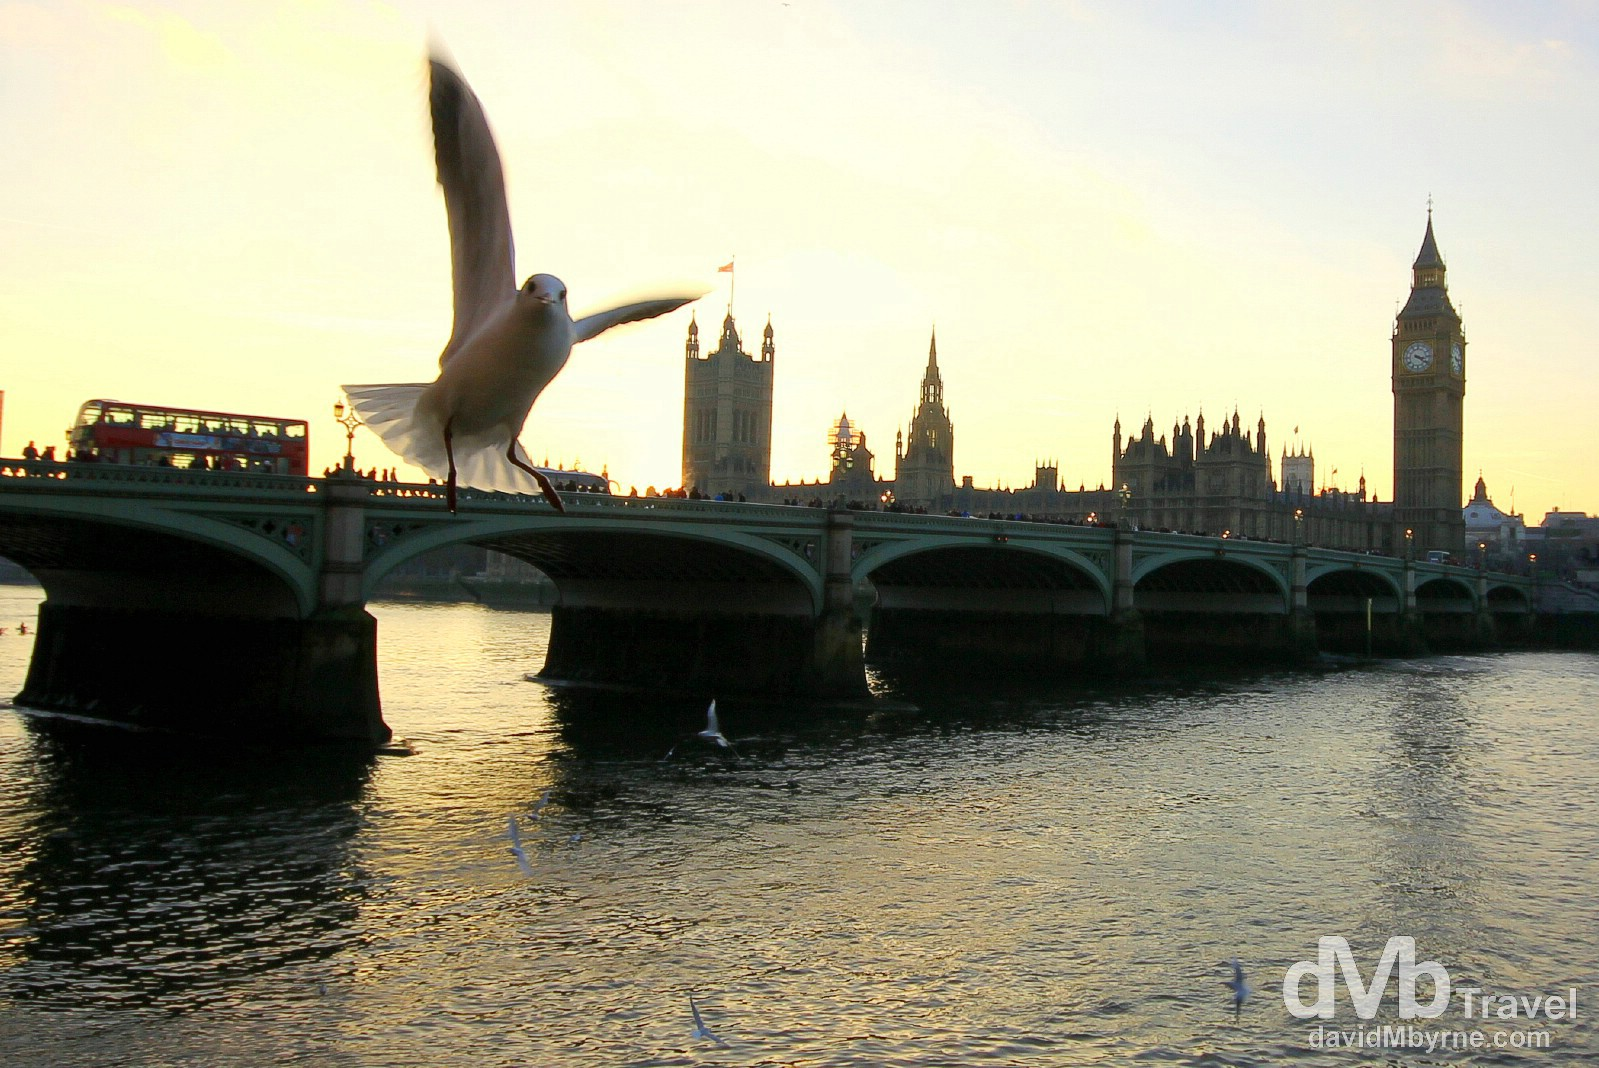 Birds flying by the banks of the River Thames with Westminster Bridge & the Houses of Parliament in the background. London, England. December 8th 2012.